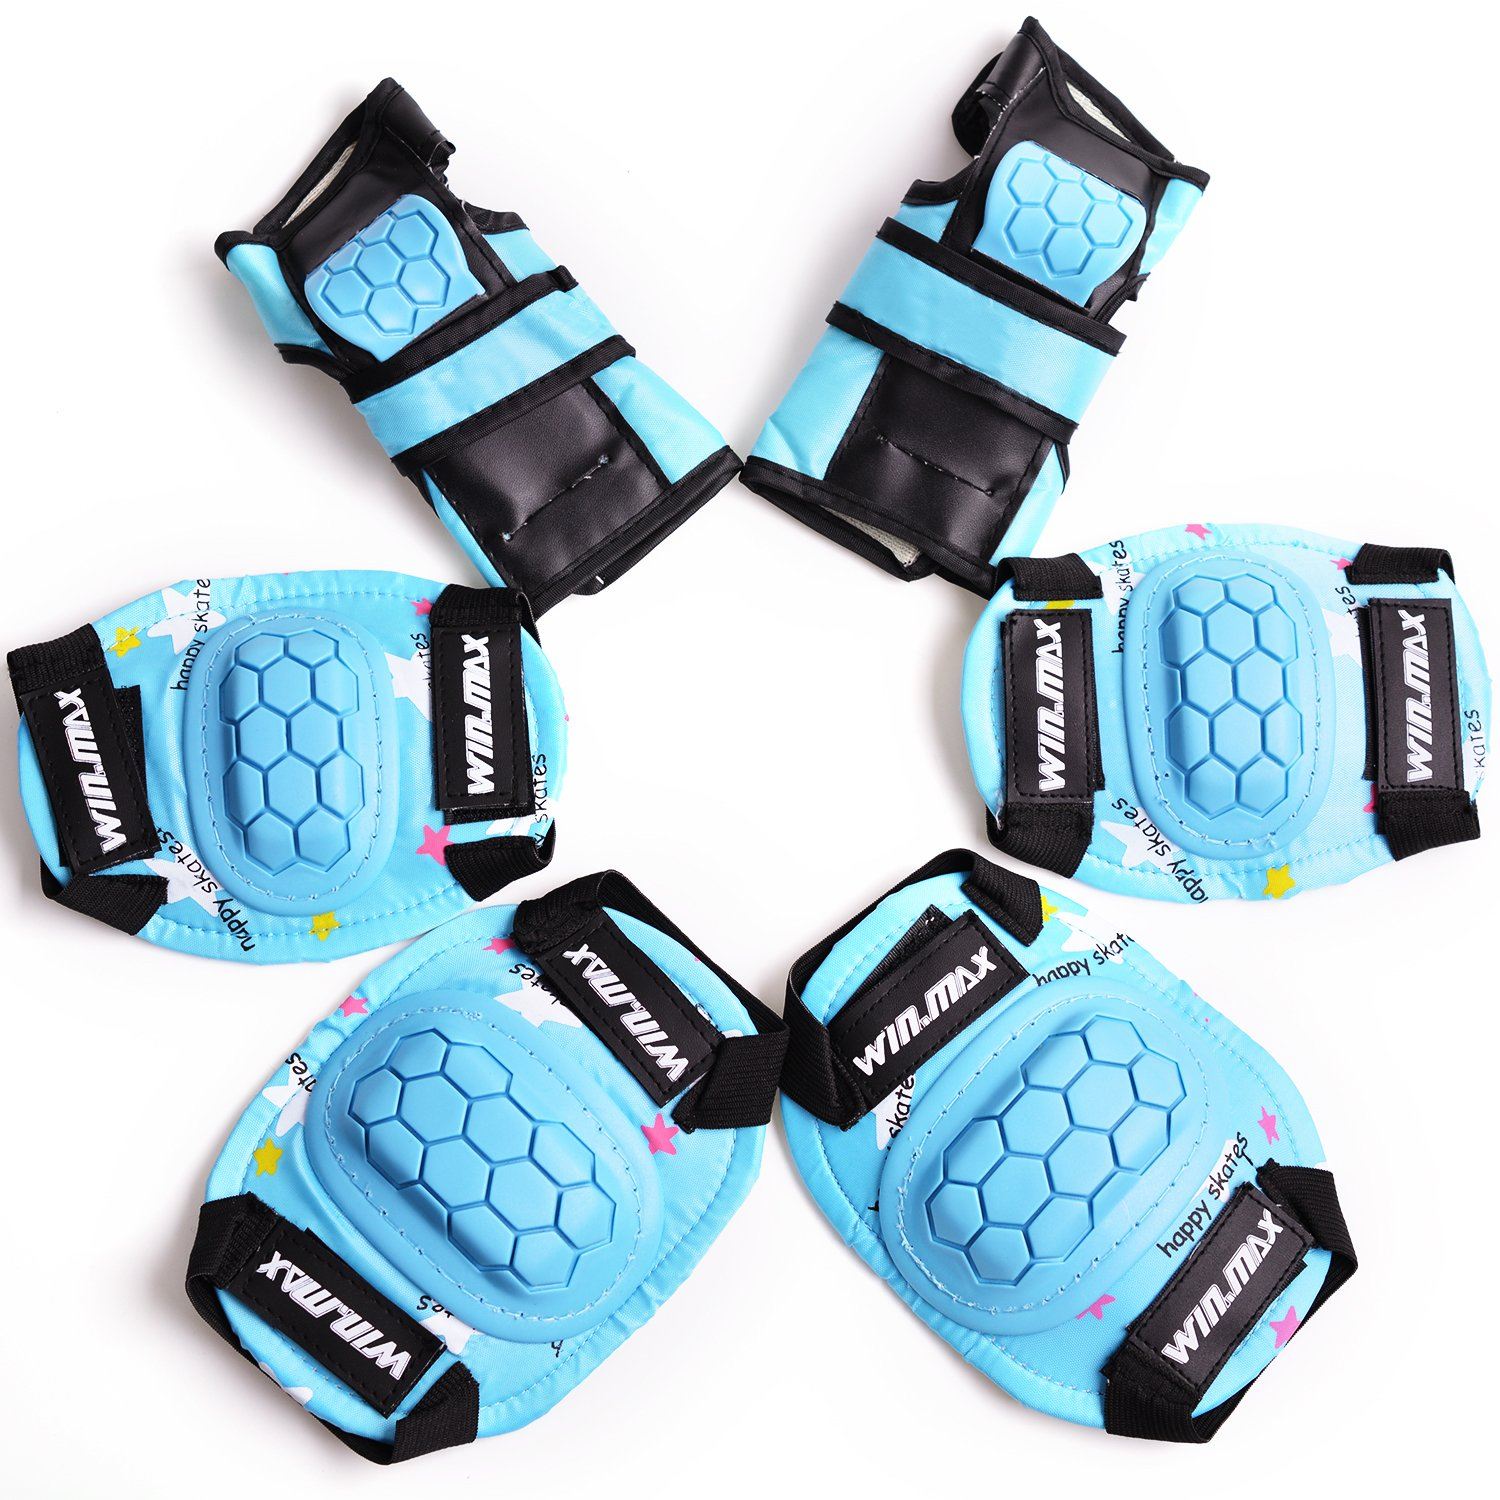 WIN.MAX Protective Gear Pads (Knee pads+Elbow pads+wrist pads) Kids Children Roller Skating Skateboard BMX Scooter Cycling (blue)